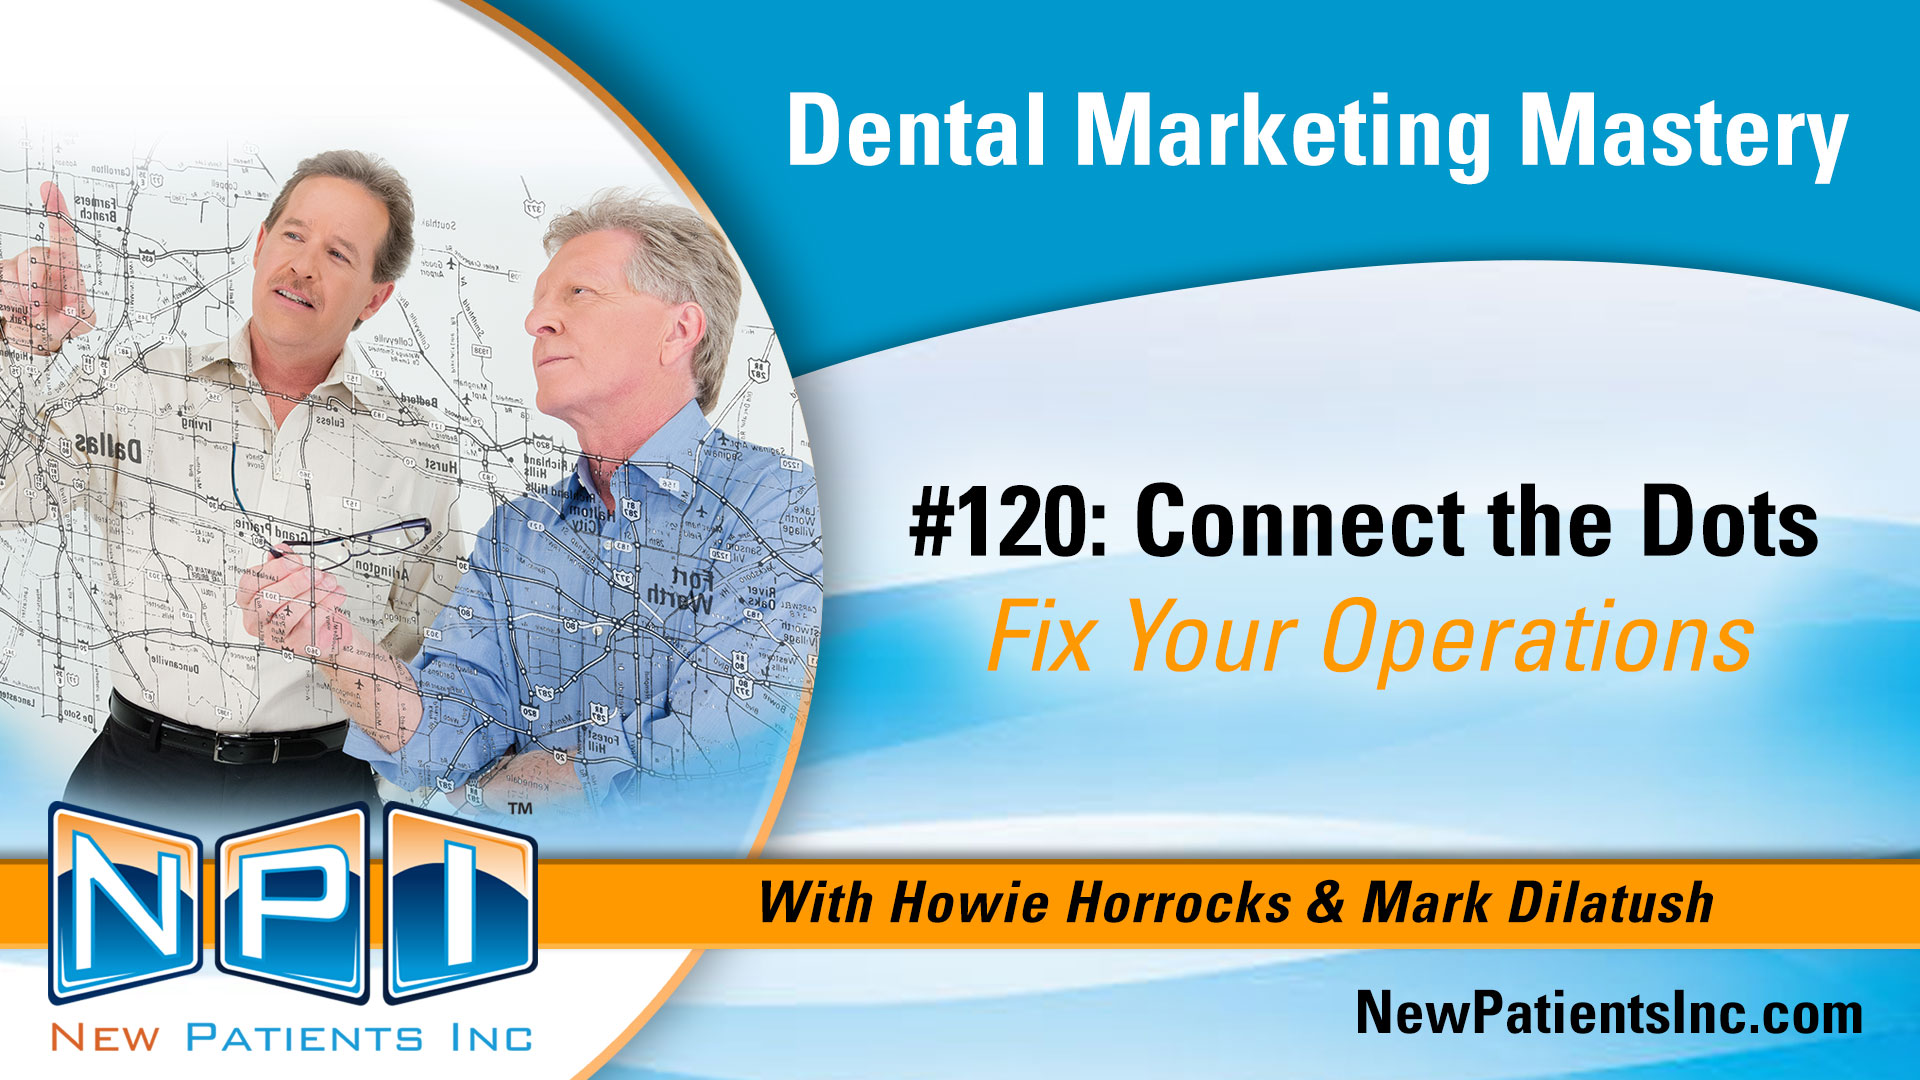 Fix Operations, Pre-appointing & Promoting Dental Practice on Price